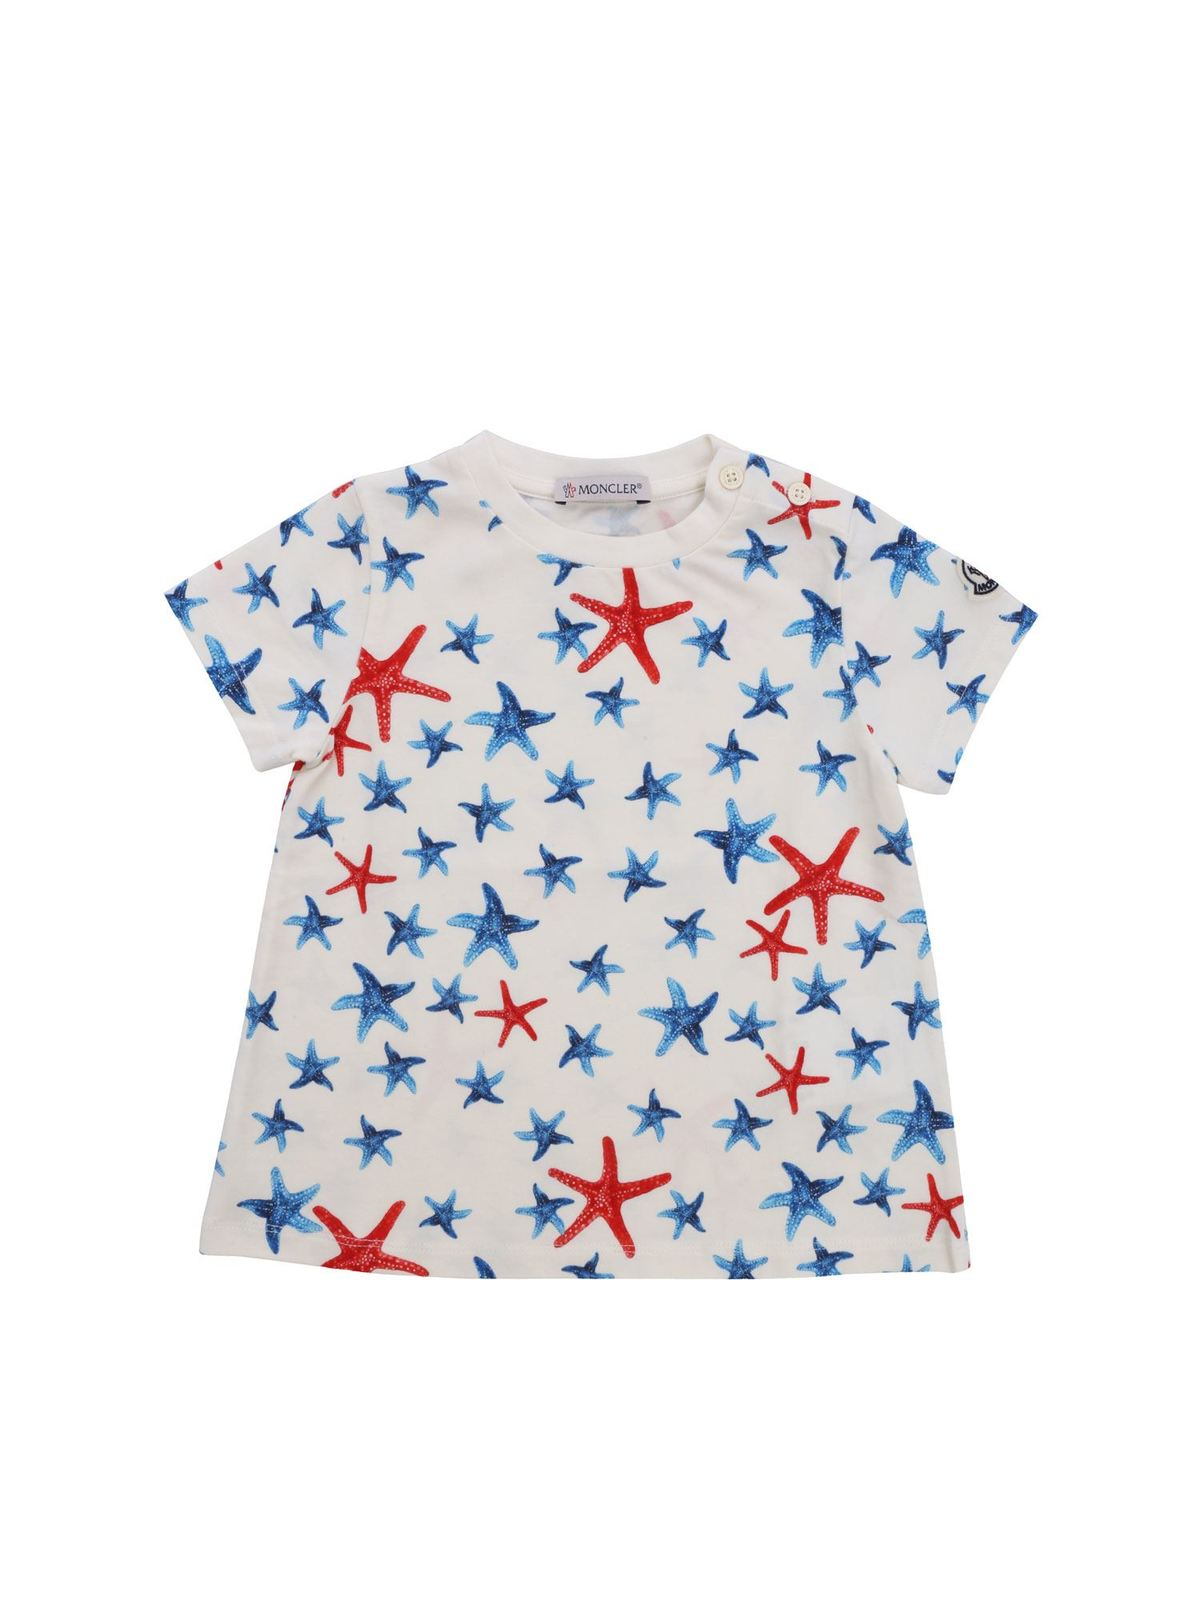 MONCLER JR MONCLER JR T-SHIRT WITH STARFISH PATTERN